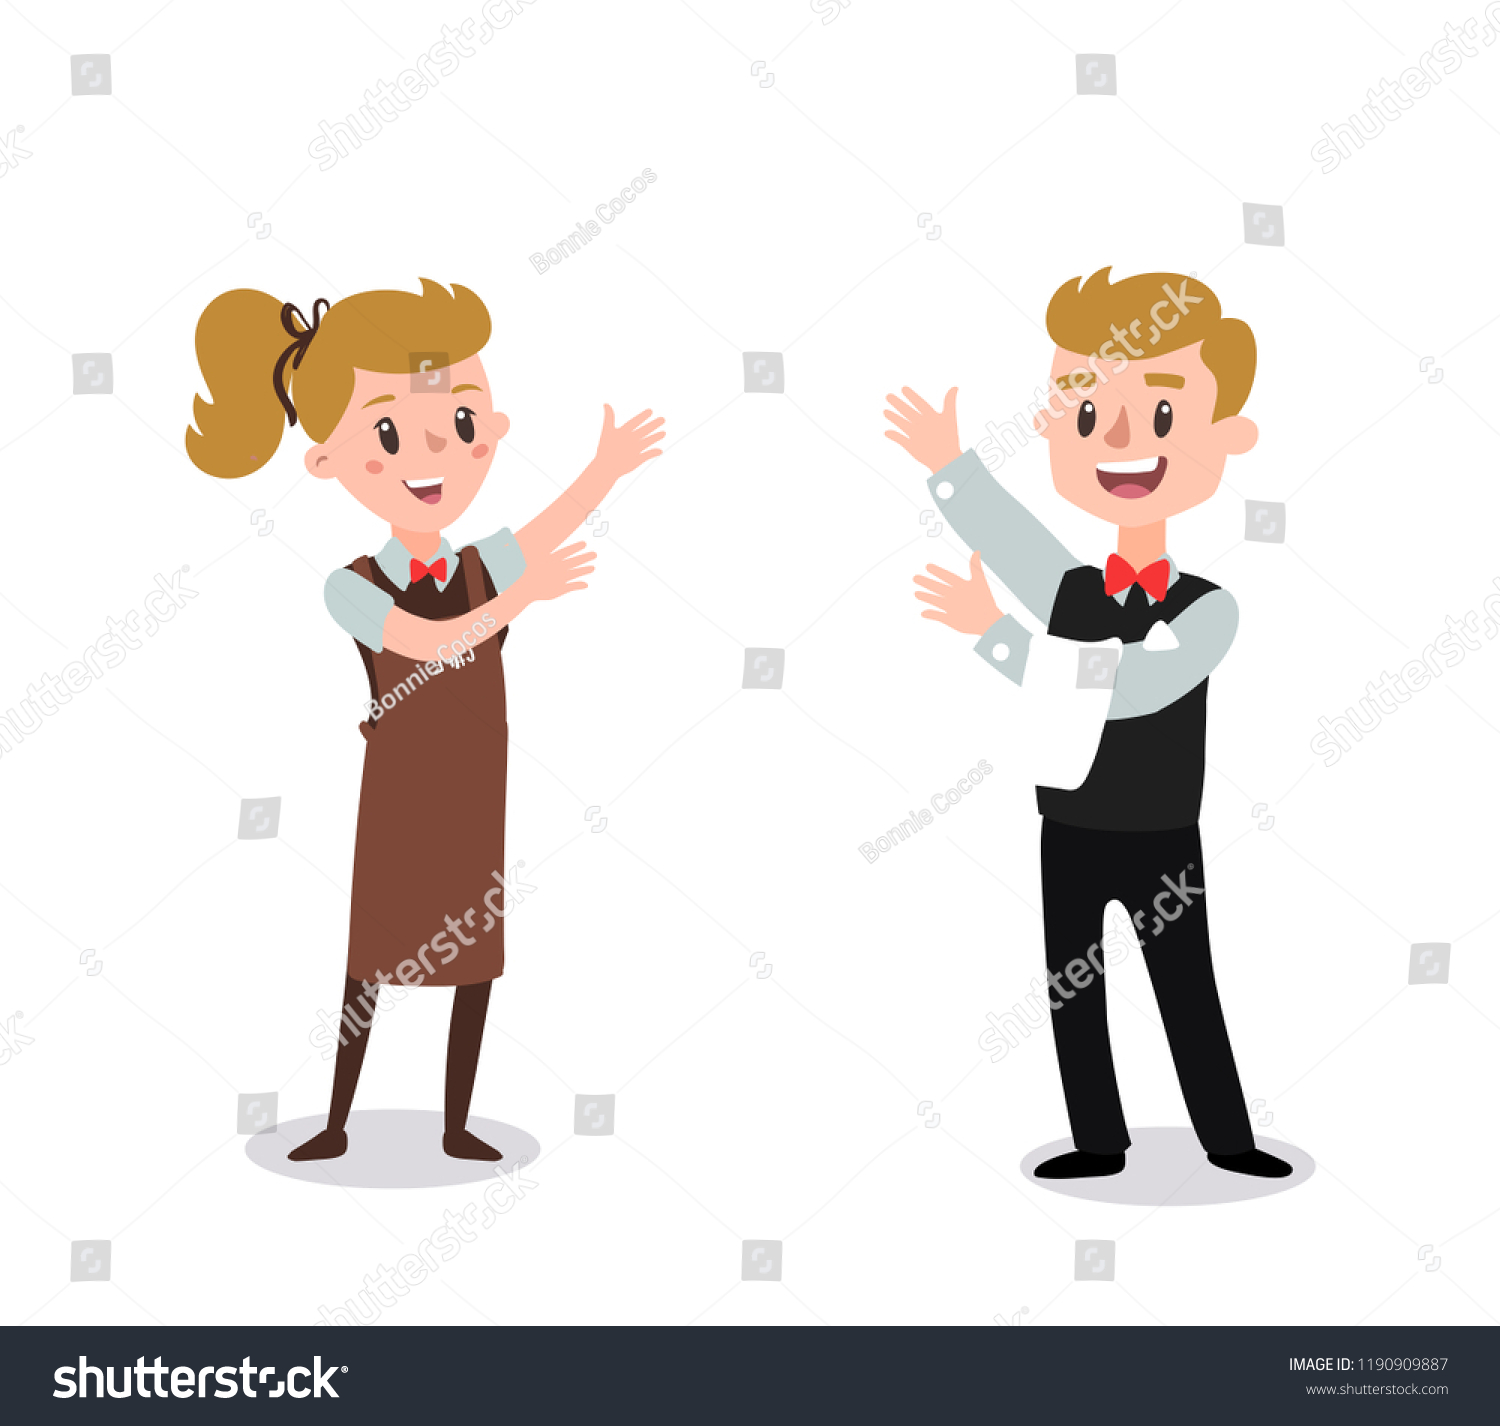 Couple of waiters wearing the uniform holding hands up fun flat cartoon personage isolated